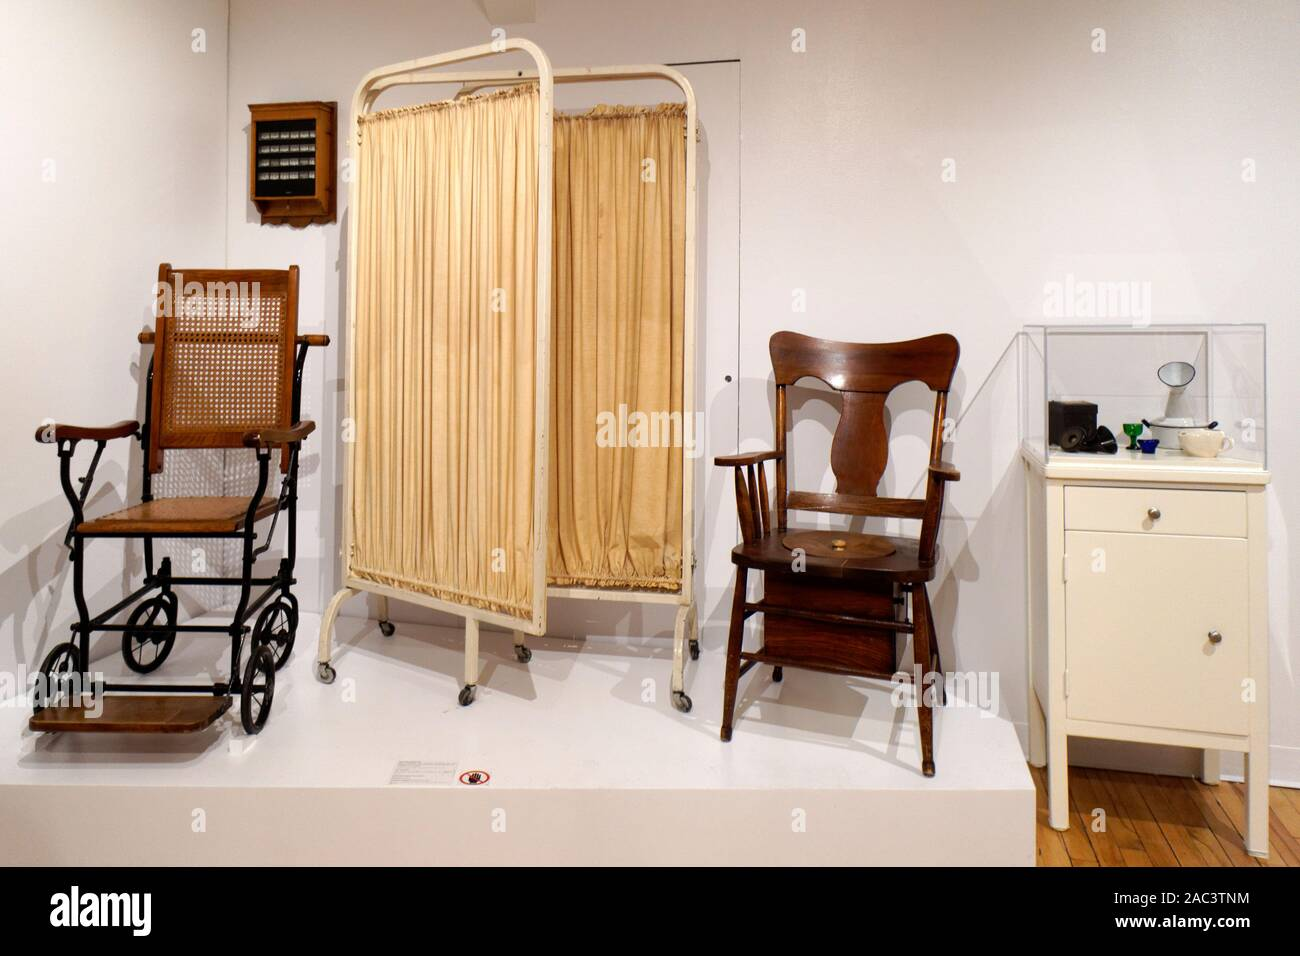 Nursing infirmary display with antique nursing equipment from the late 19th and early 20th centuries Stock Photo